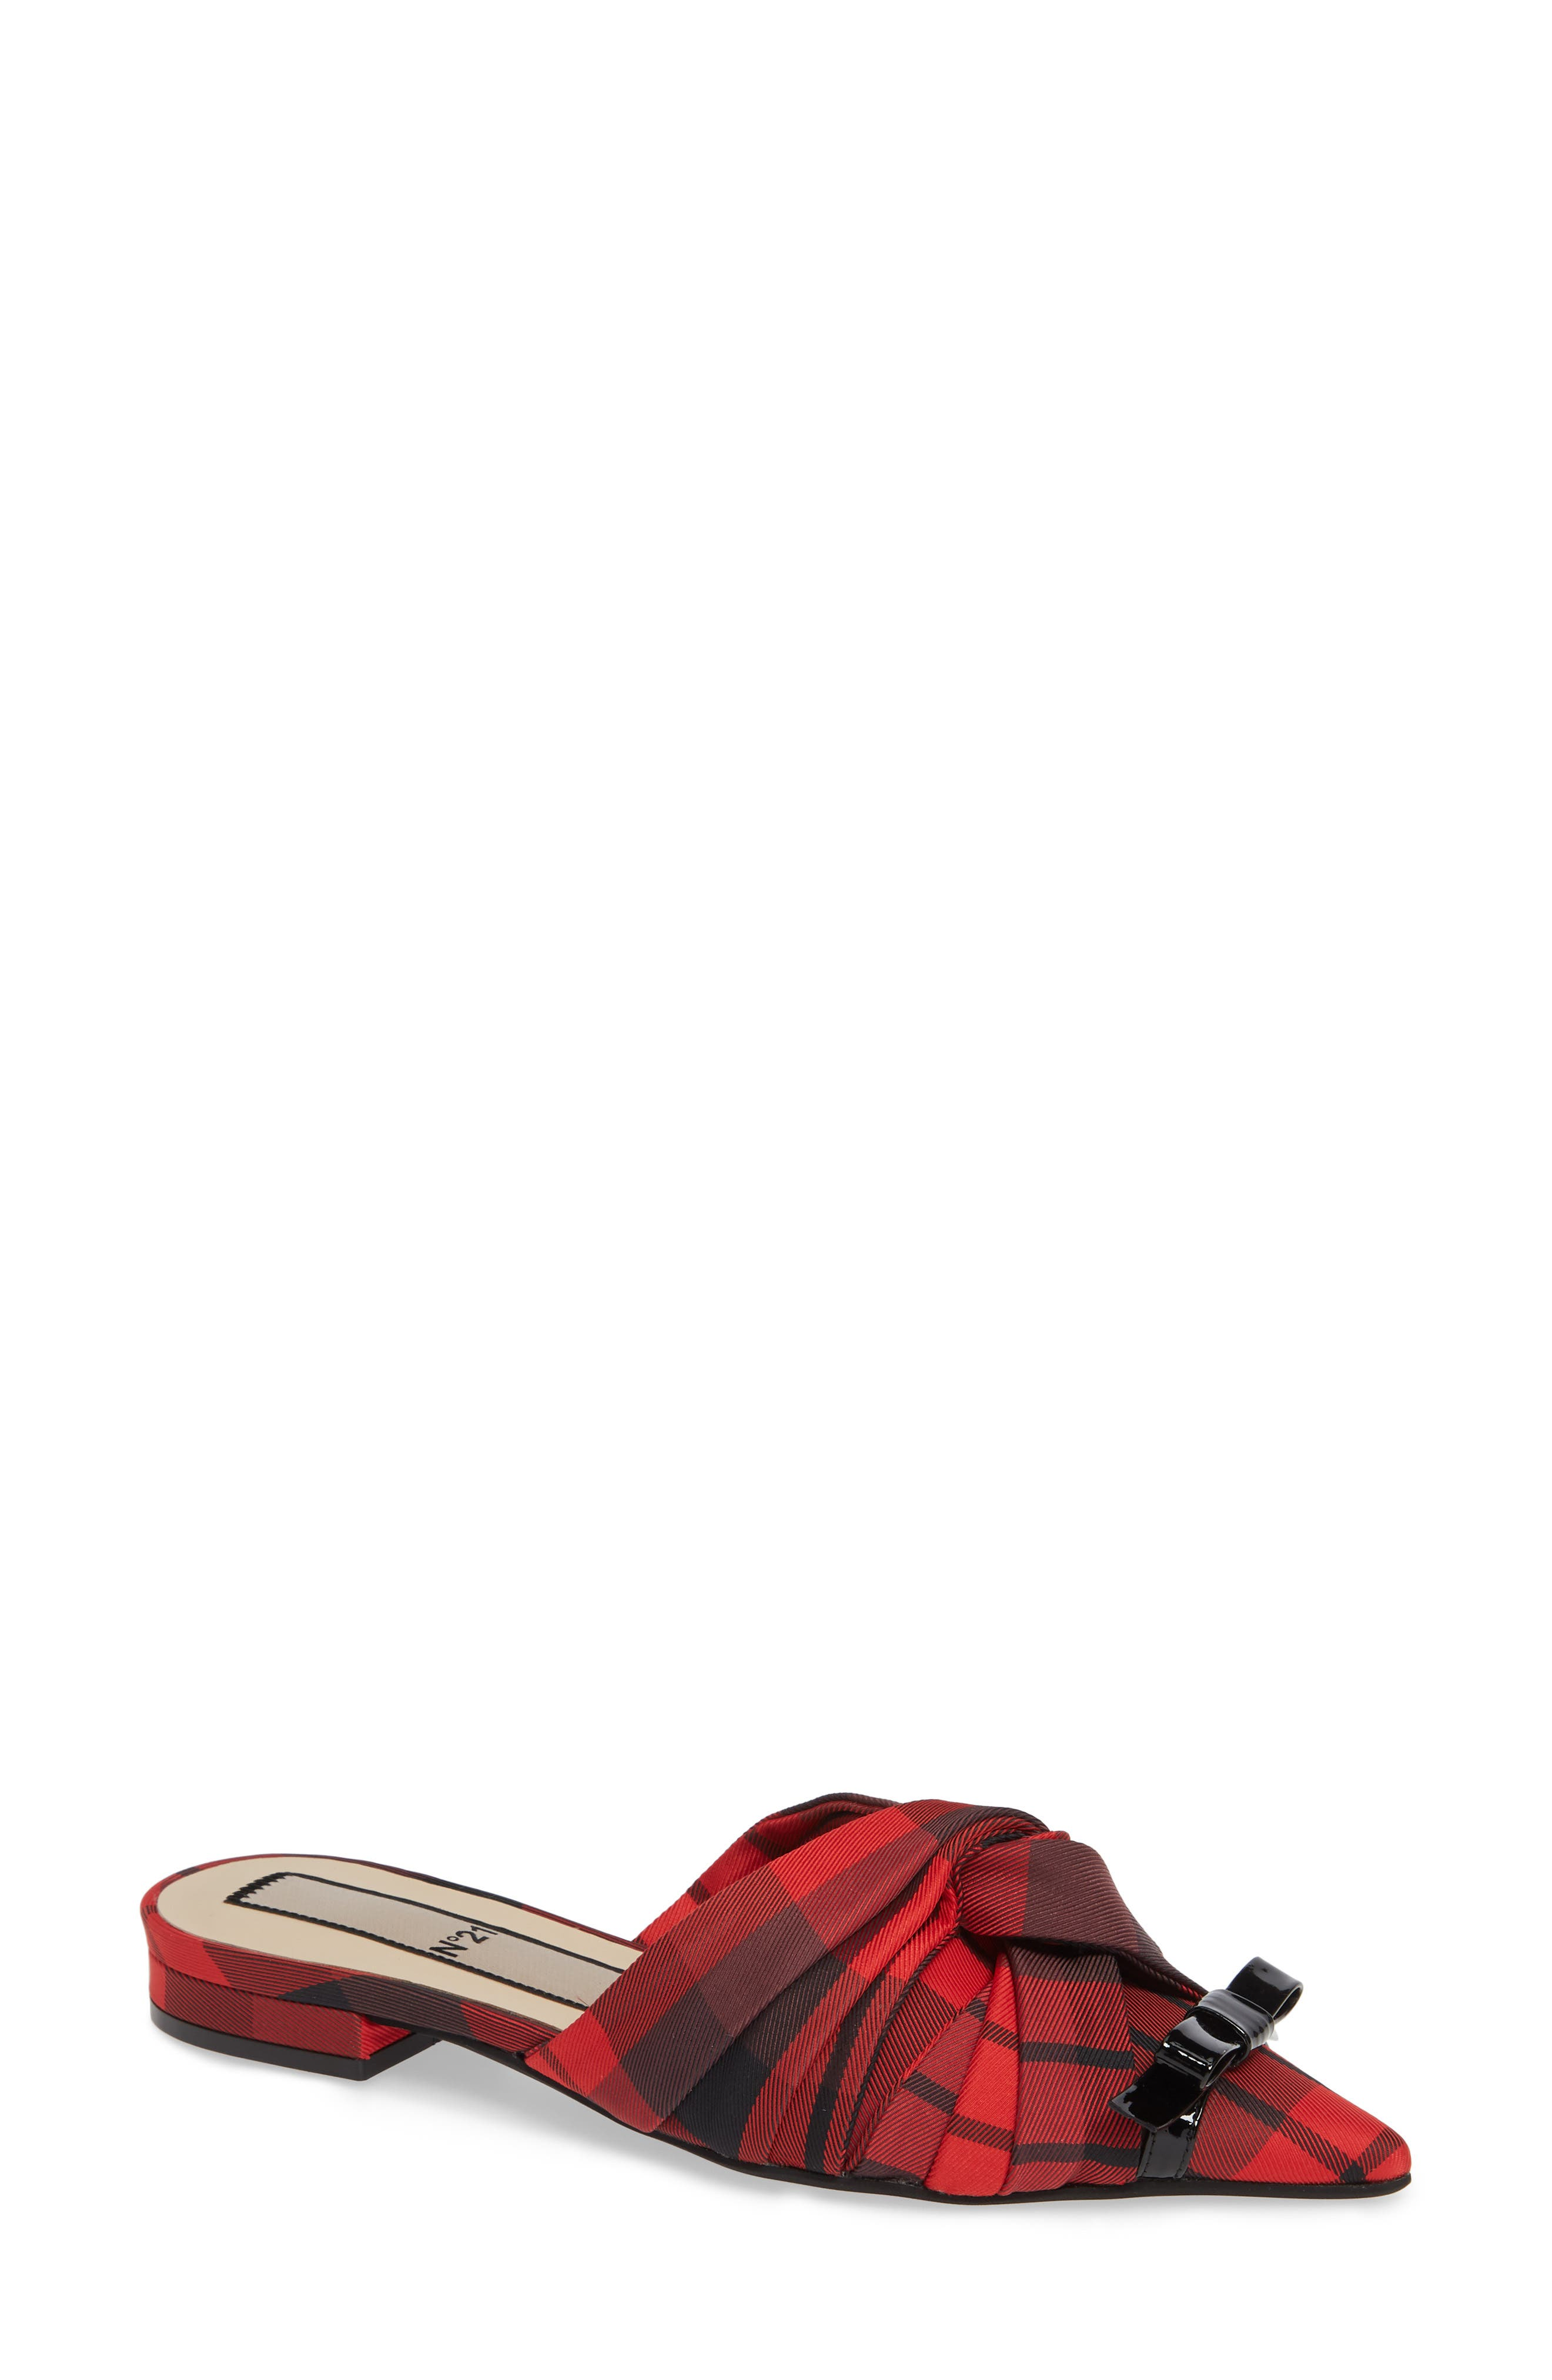 N?21 Knotted Mule, Red